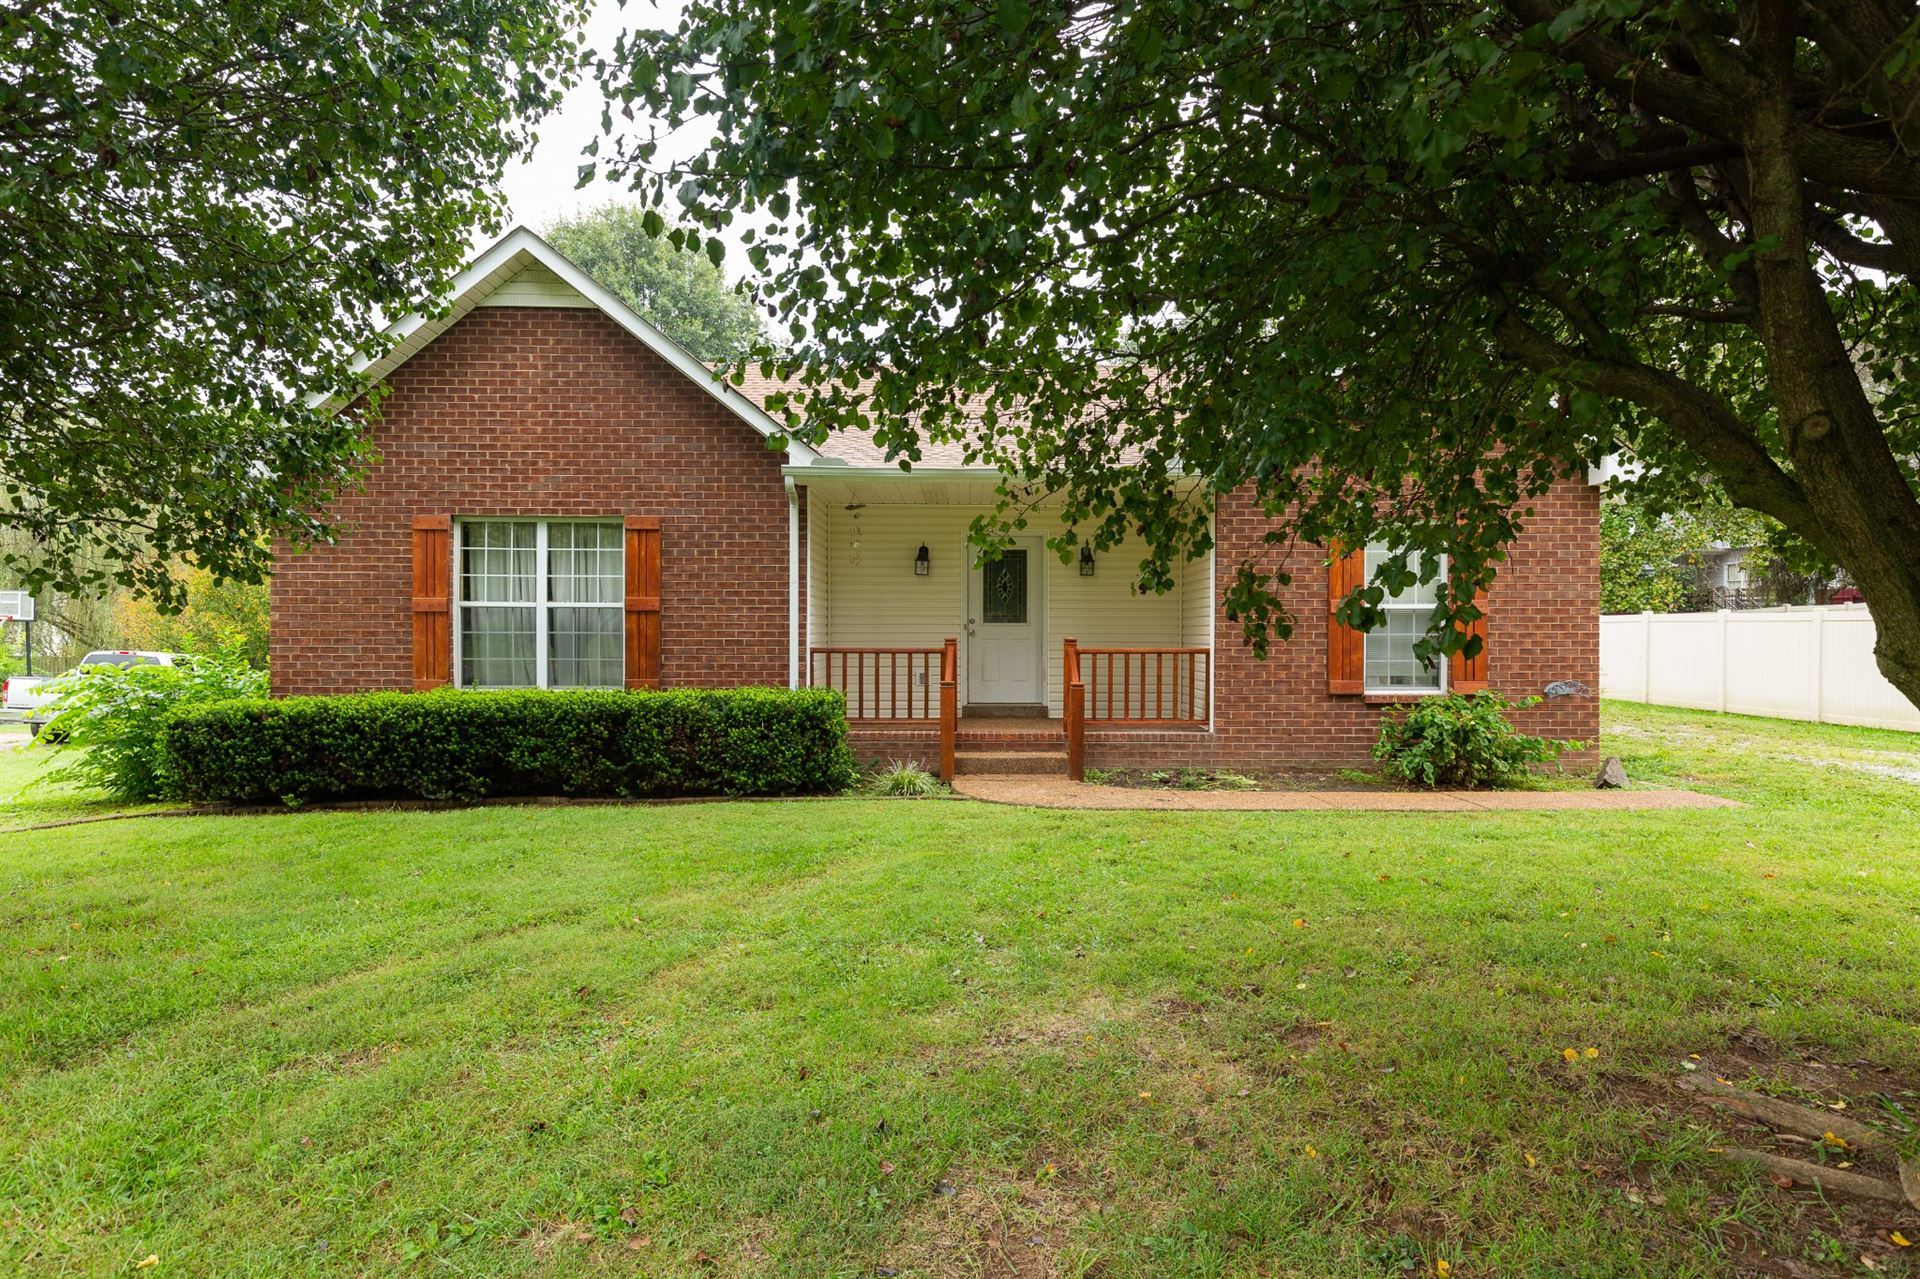 712 Red Hollow Dr, Springfield, TN 37172 - MLS#: 2292866